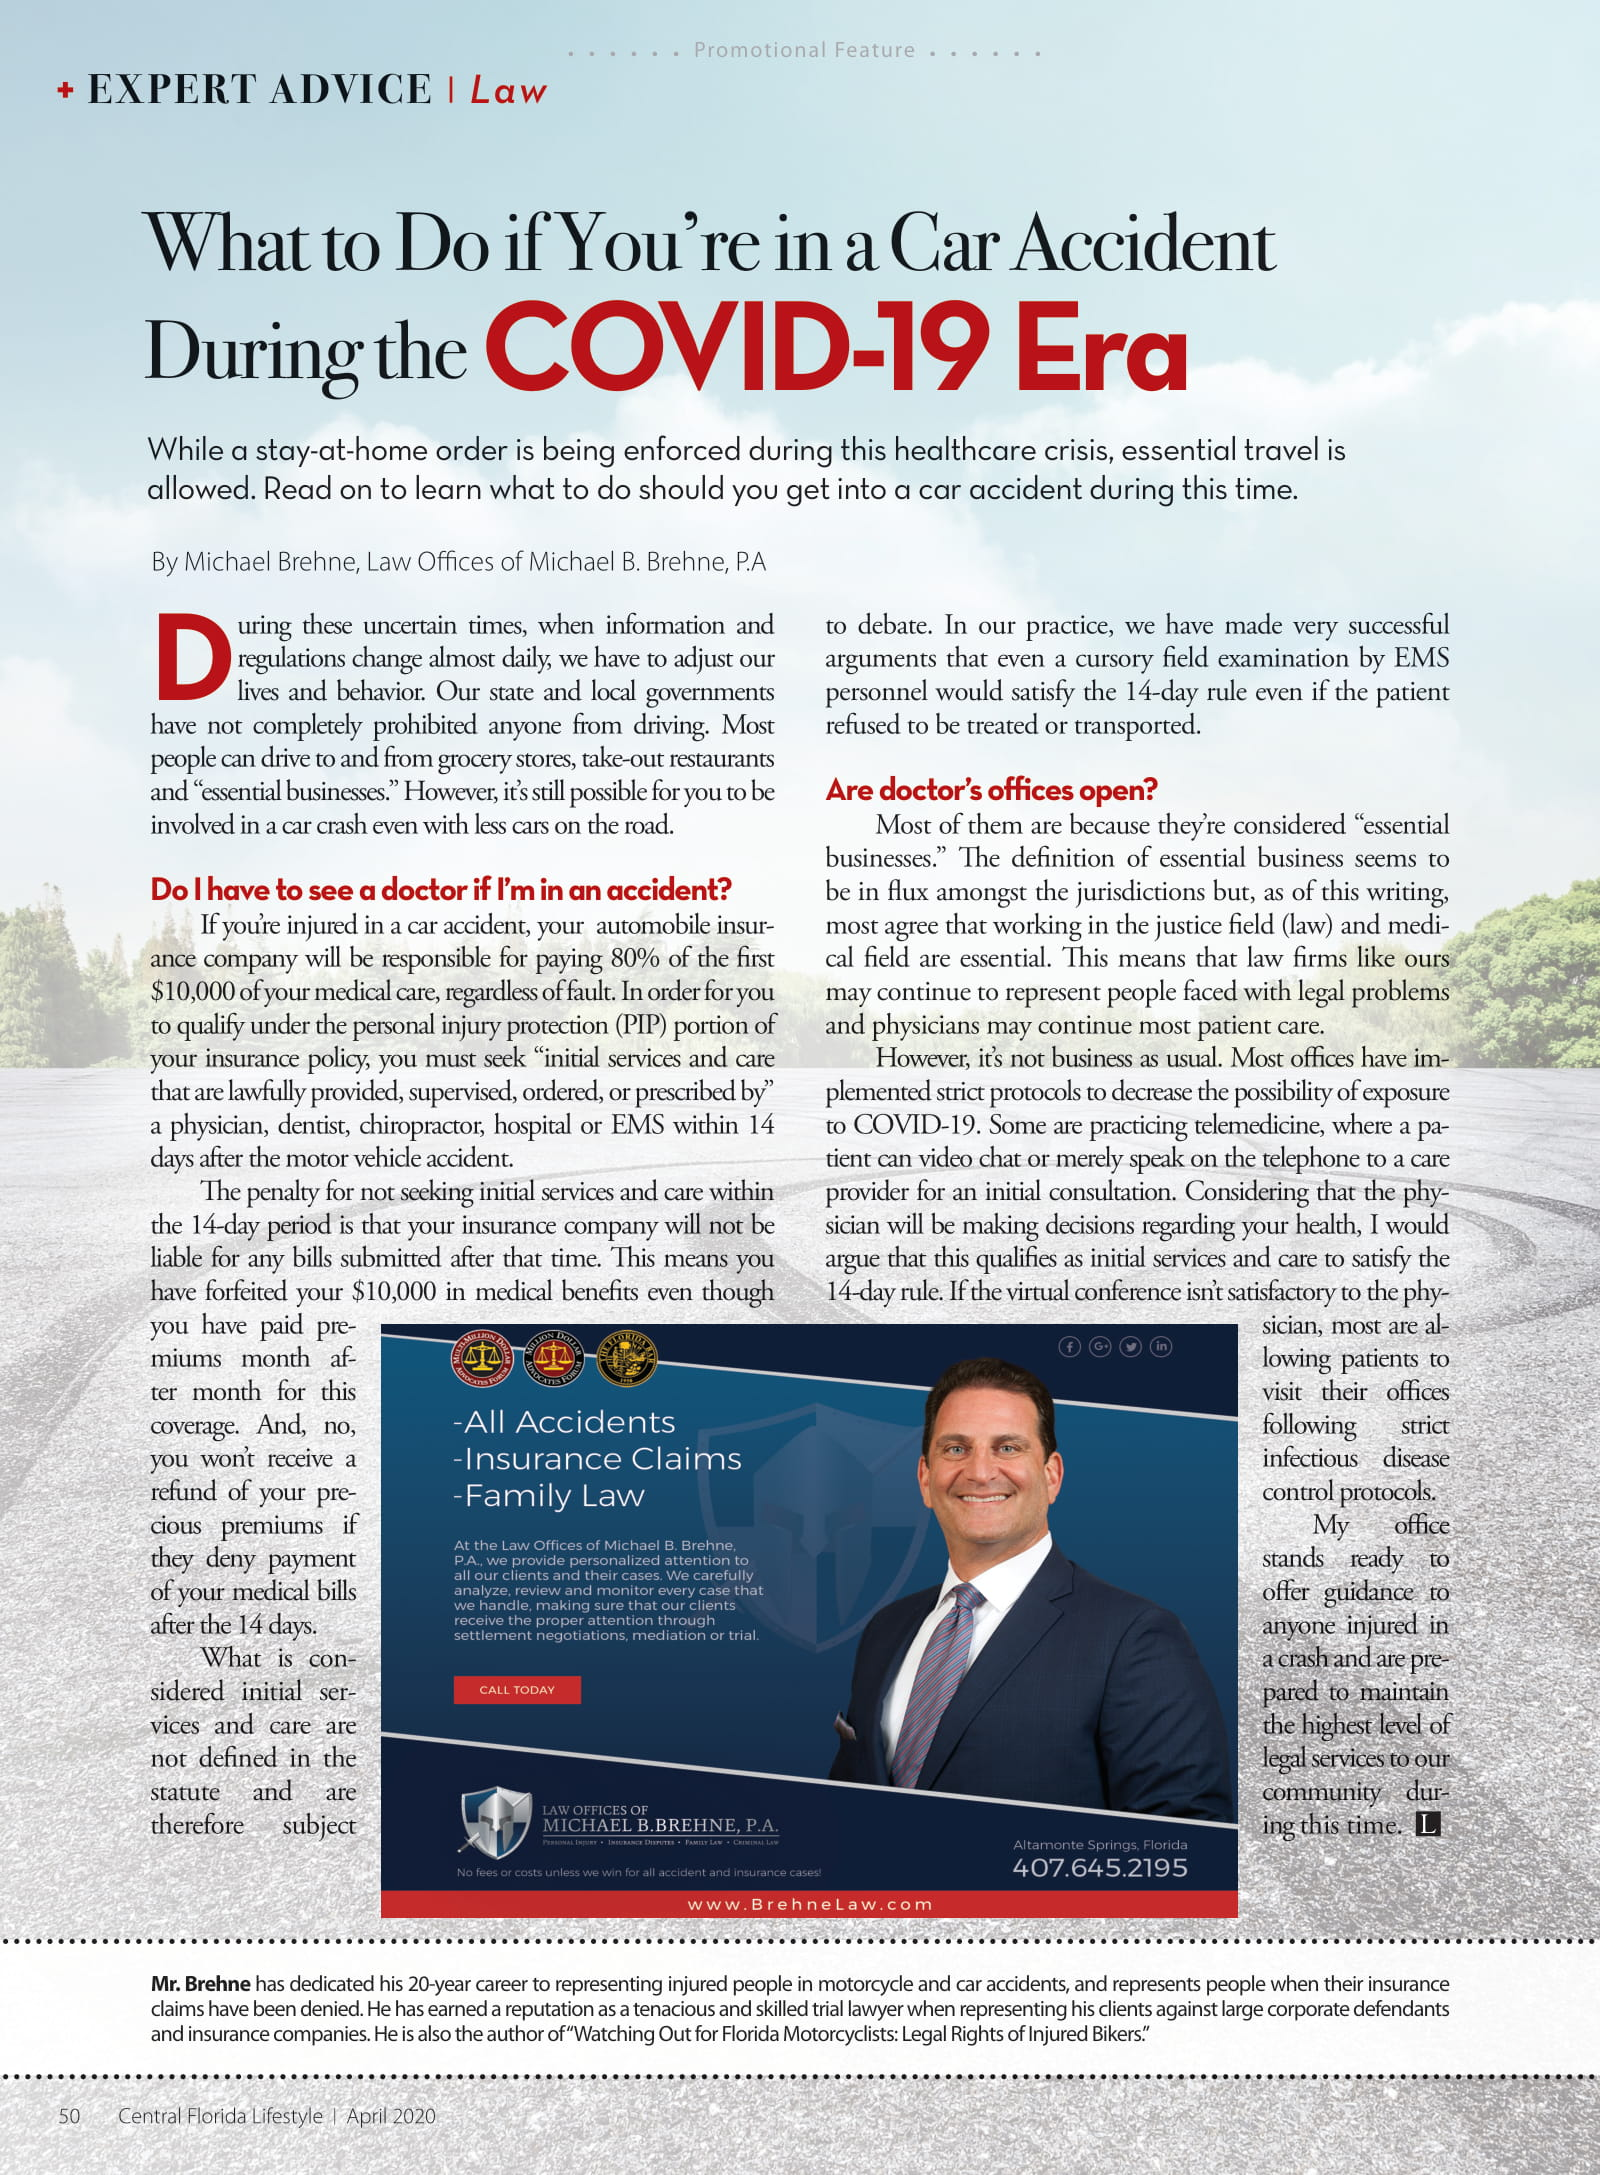 What To Do If You're In A Car Accident During The COVID-19 Era